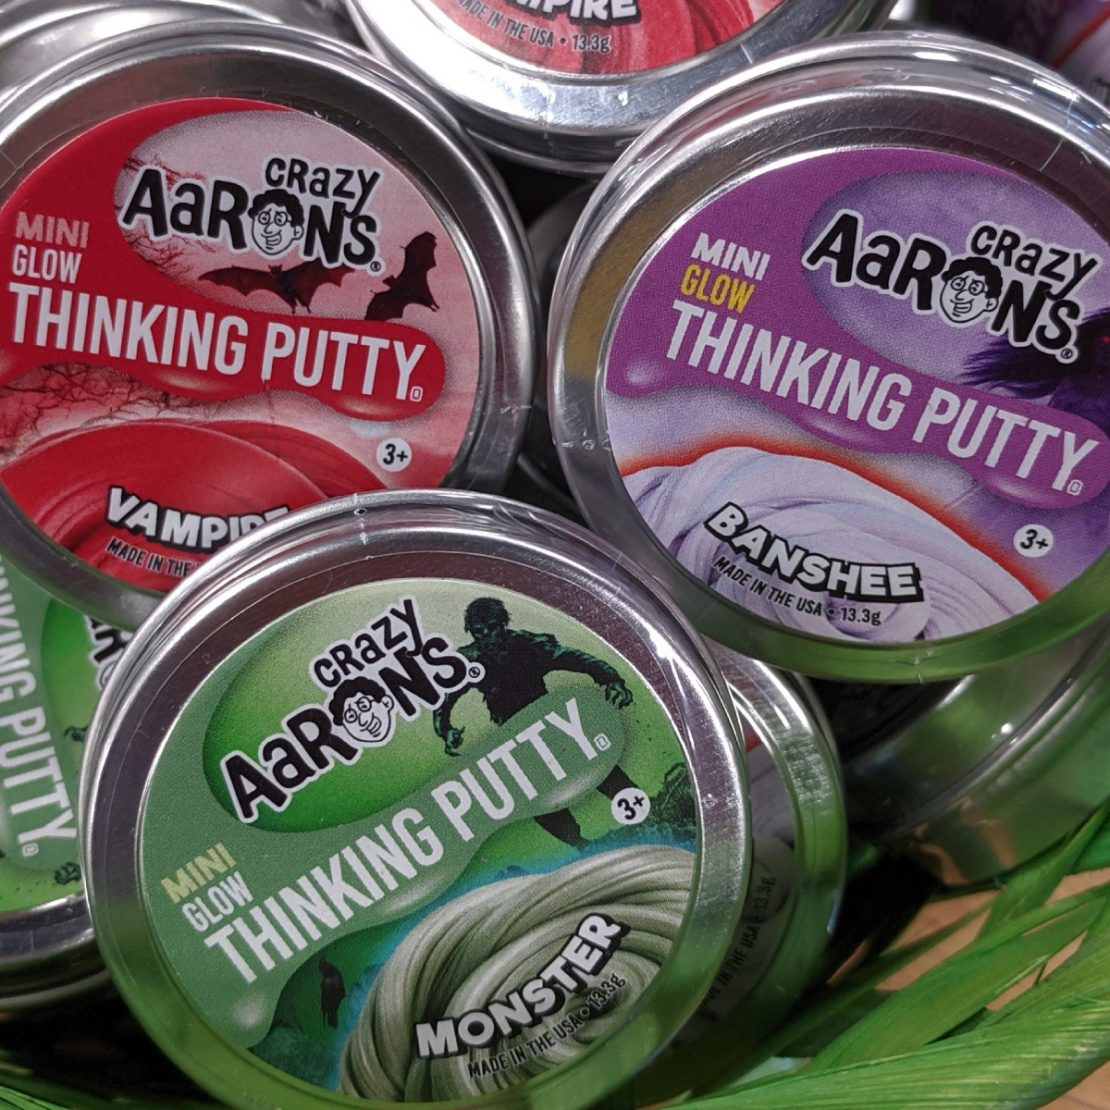 Halloween Mini Tins from Crazy Aaron's Thinking Putty